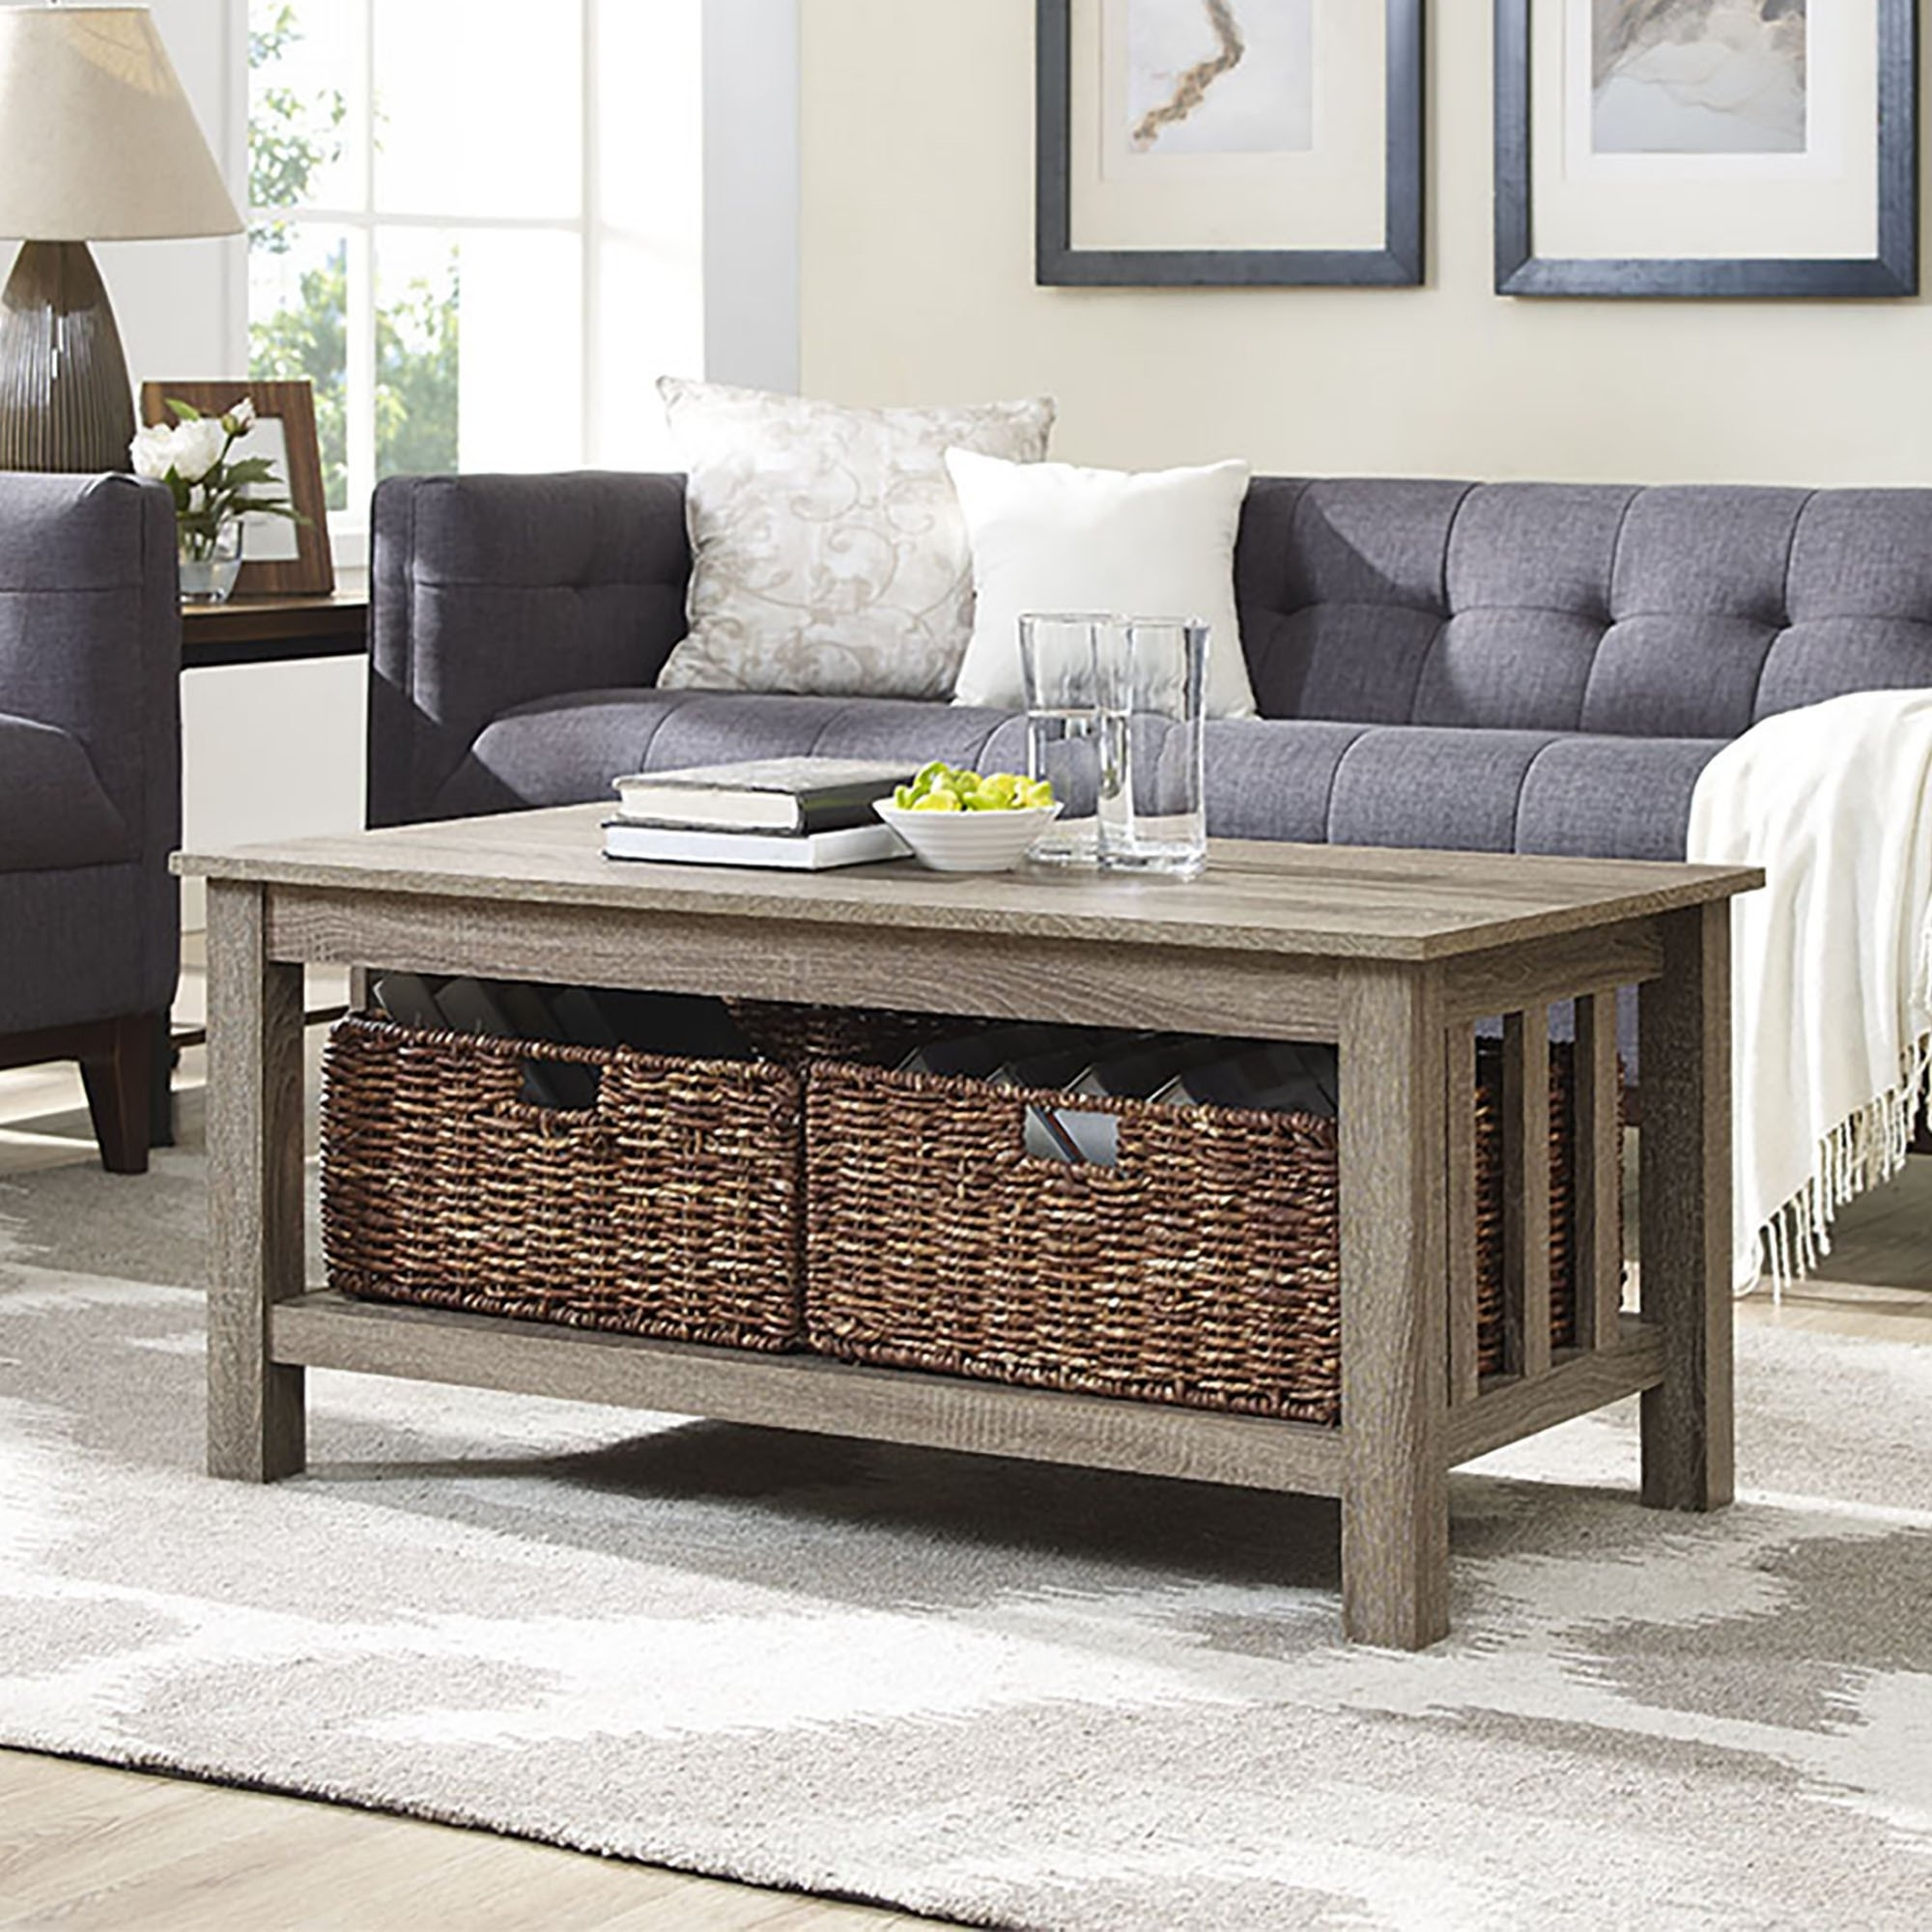 Well Known Lassen Square Lift Top Cocktail Tables Inside Shop 40 Inch Driftwood Coffee Table With Storage Totes – On Sale (View 20 of 20)